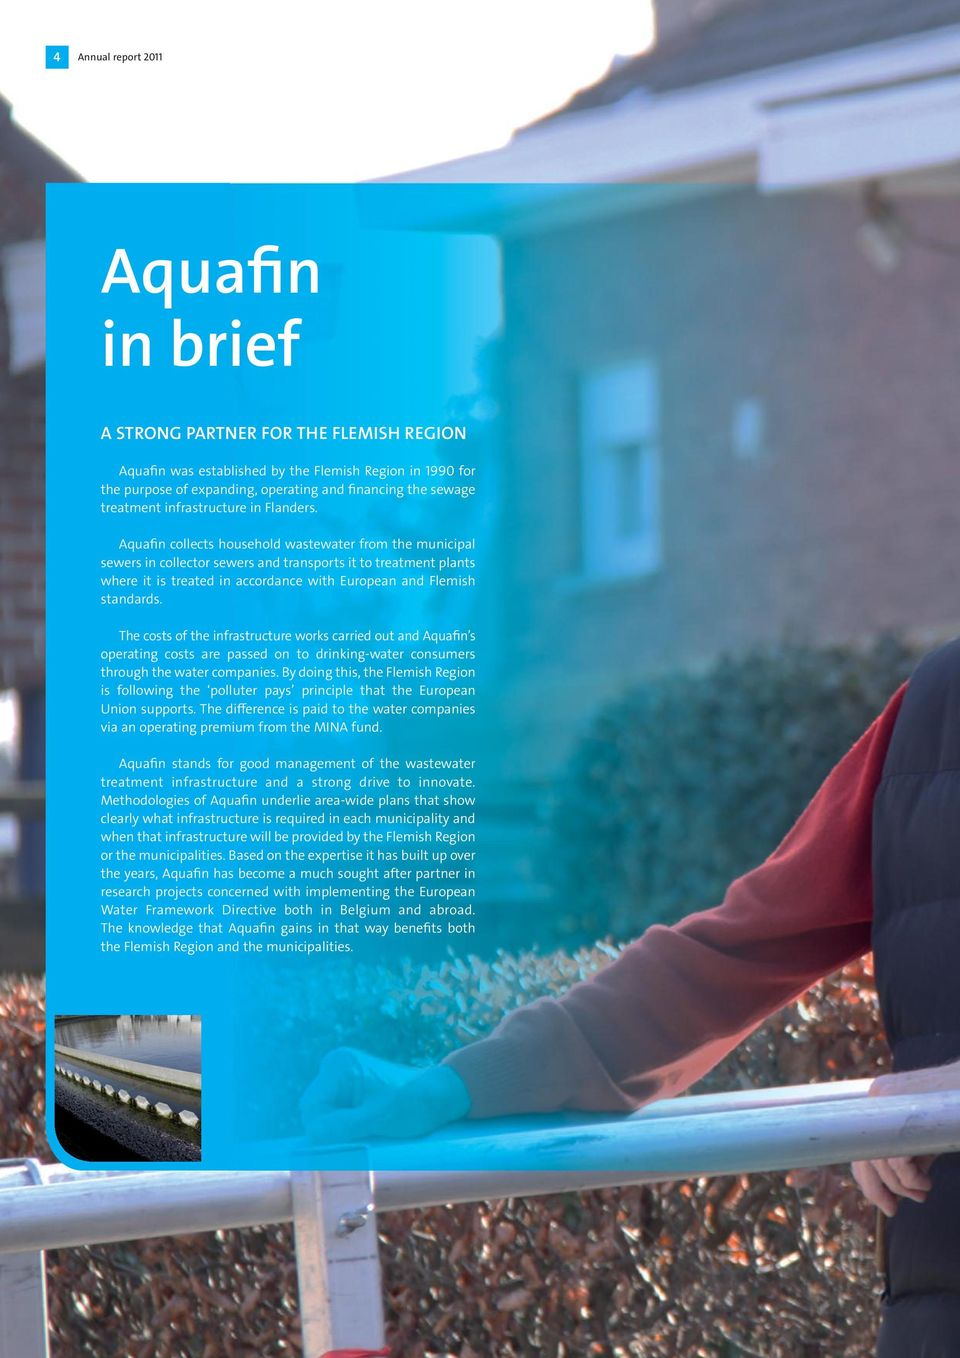 Aquafi collects household wastewater from the muicipal sewers i collector sewers ad trasports it to treatmet plats where it is treated i accordace with Europea ad Flemish stadards.